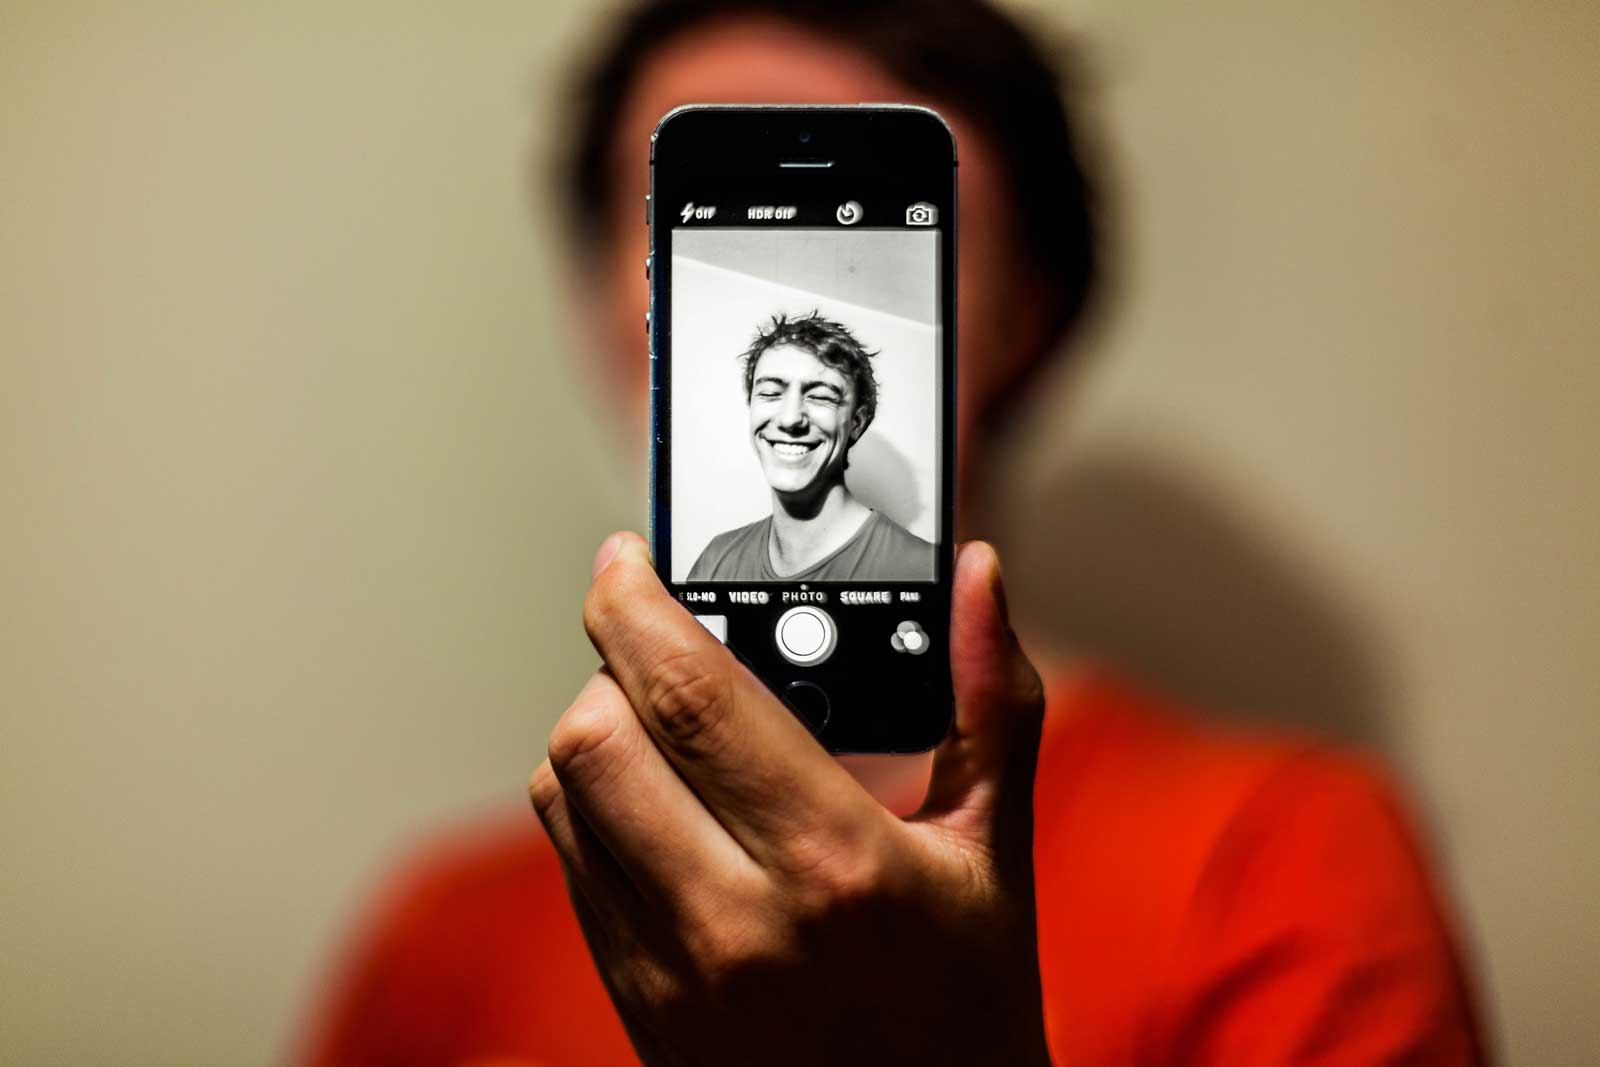 man smiling on phone